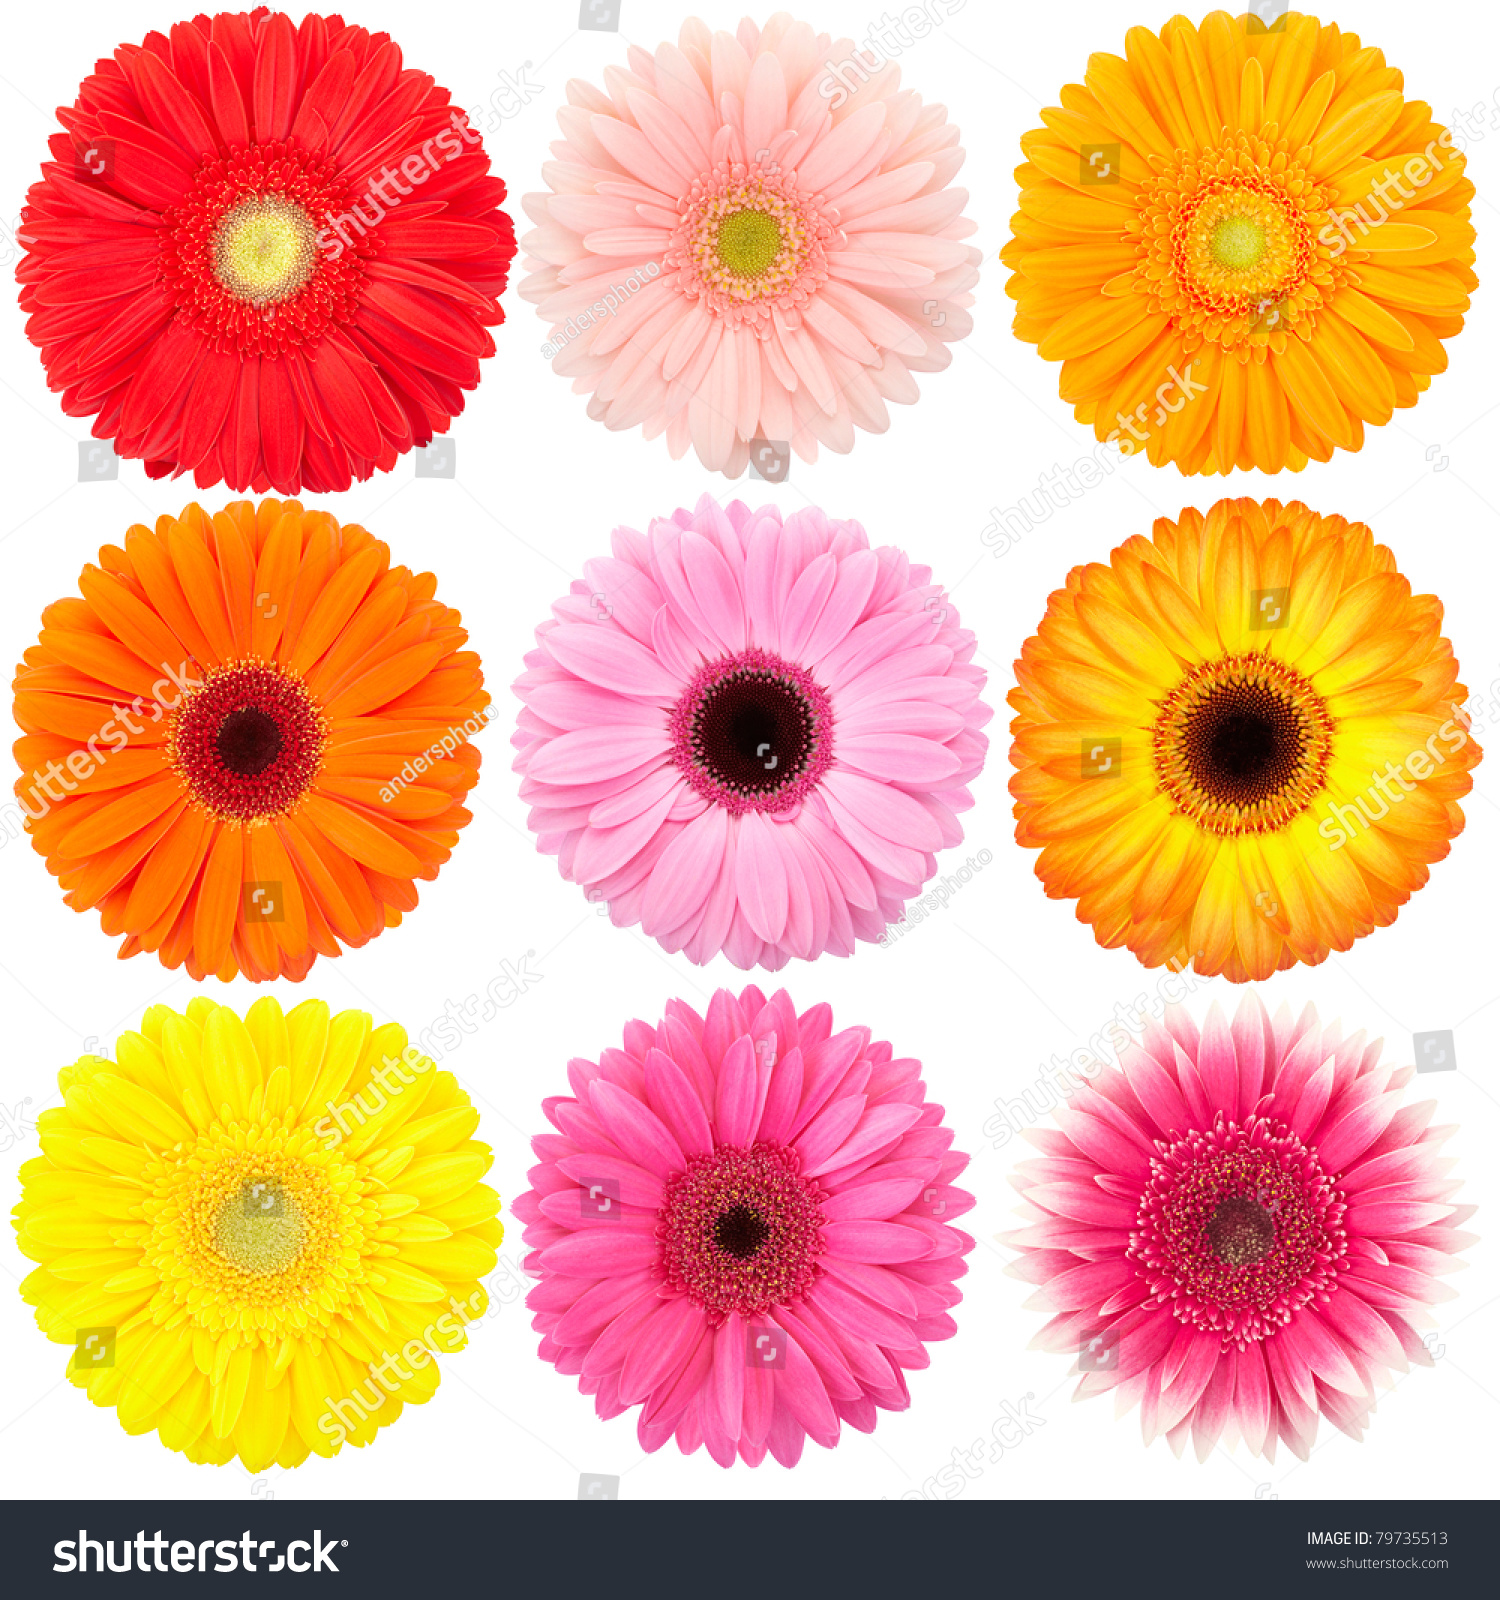 Flower Gerber Daisy Collection Isolated On Stock Photo 79735513 ...